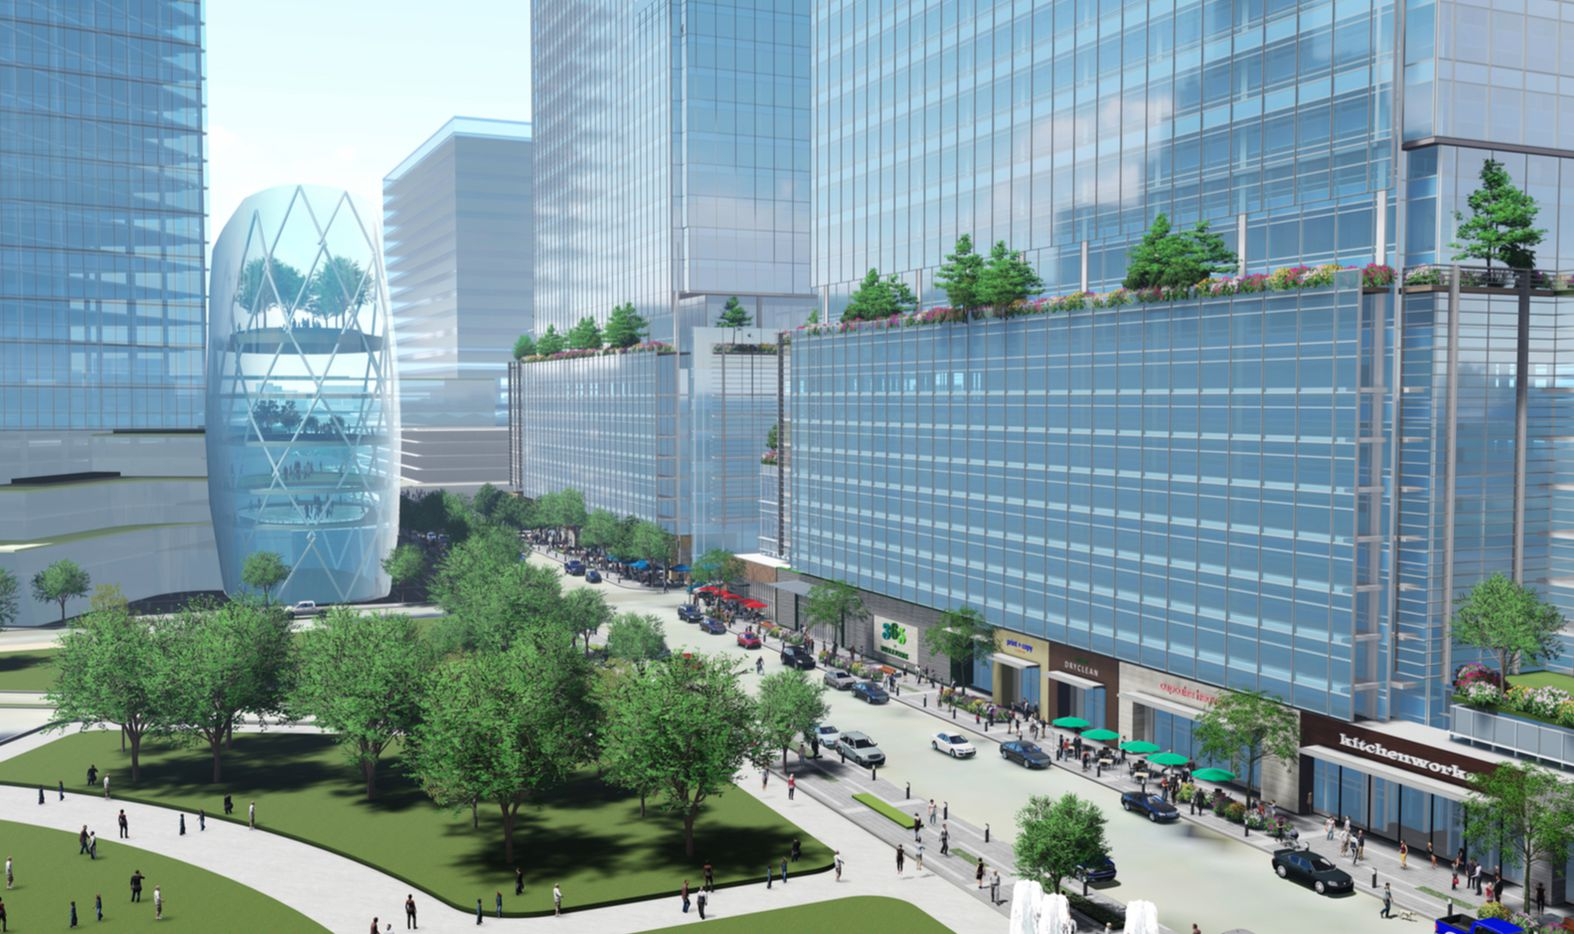 A large park would have connected the Amazon buildings to City Hall.